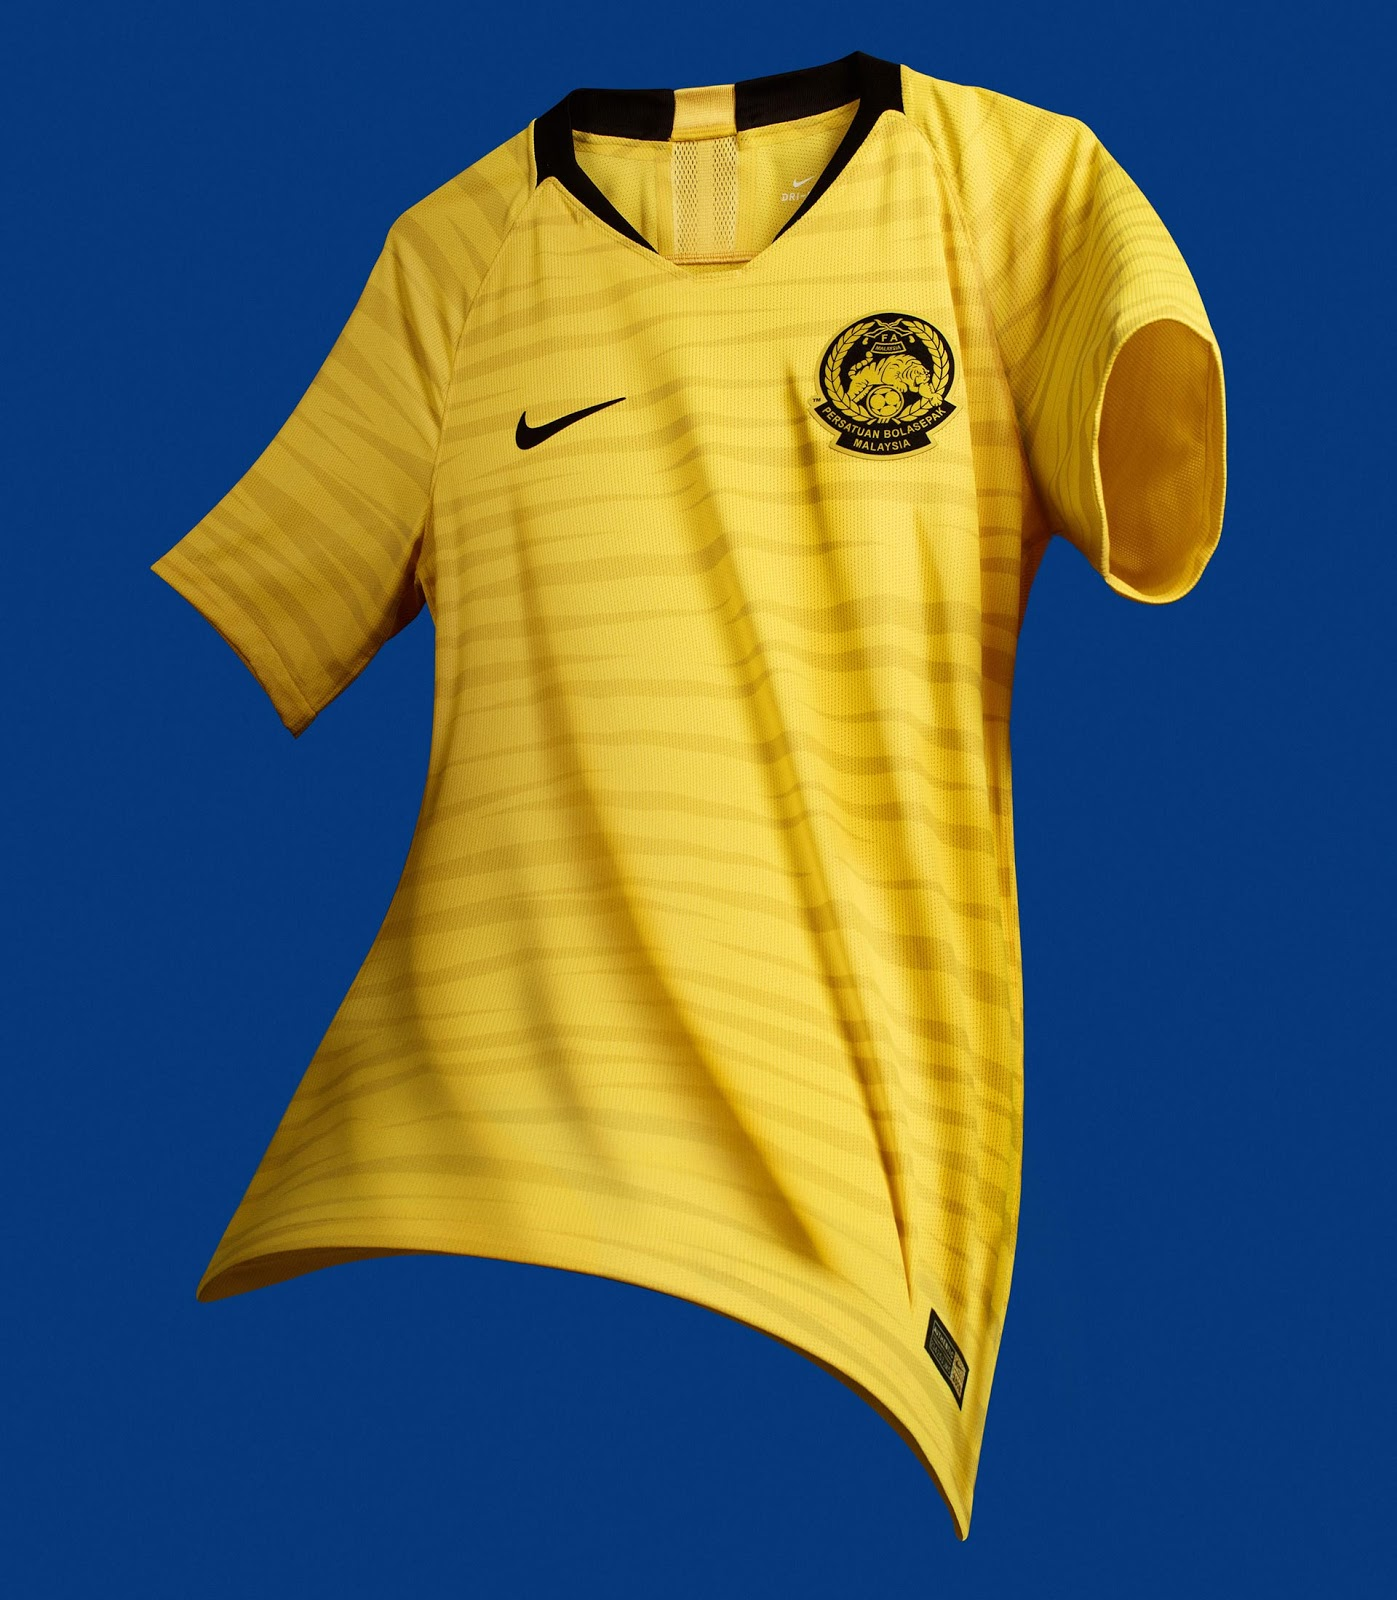 c5919b737d6 Malaysia s football team takes its nickname from the national symbol  the  tiger